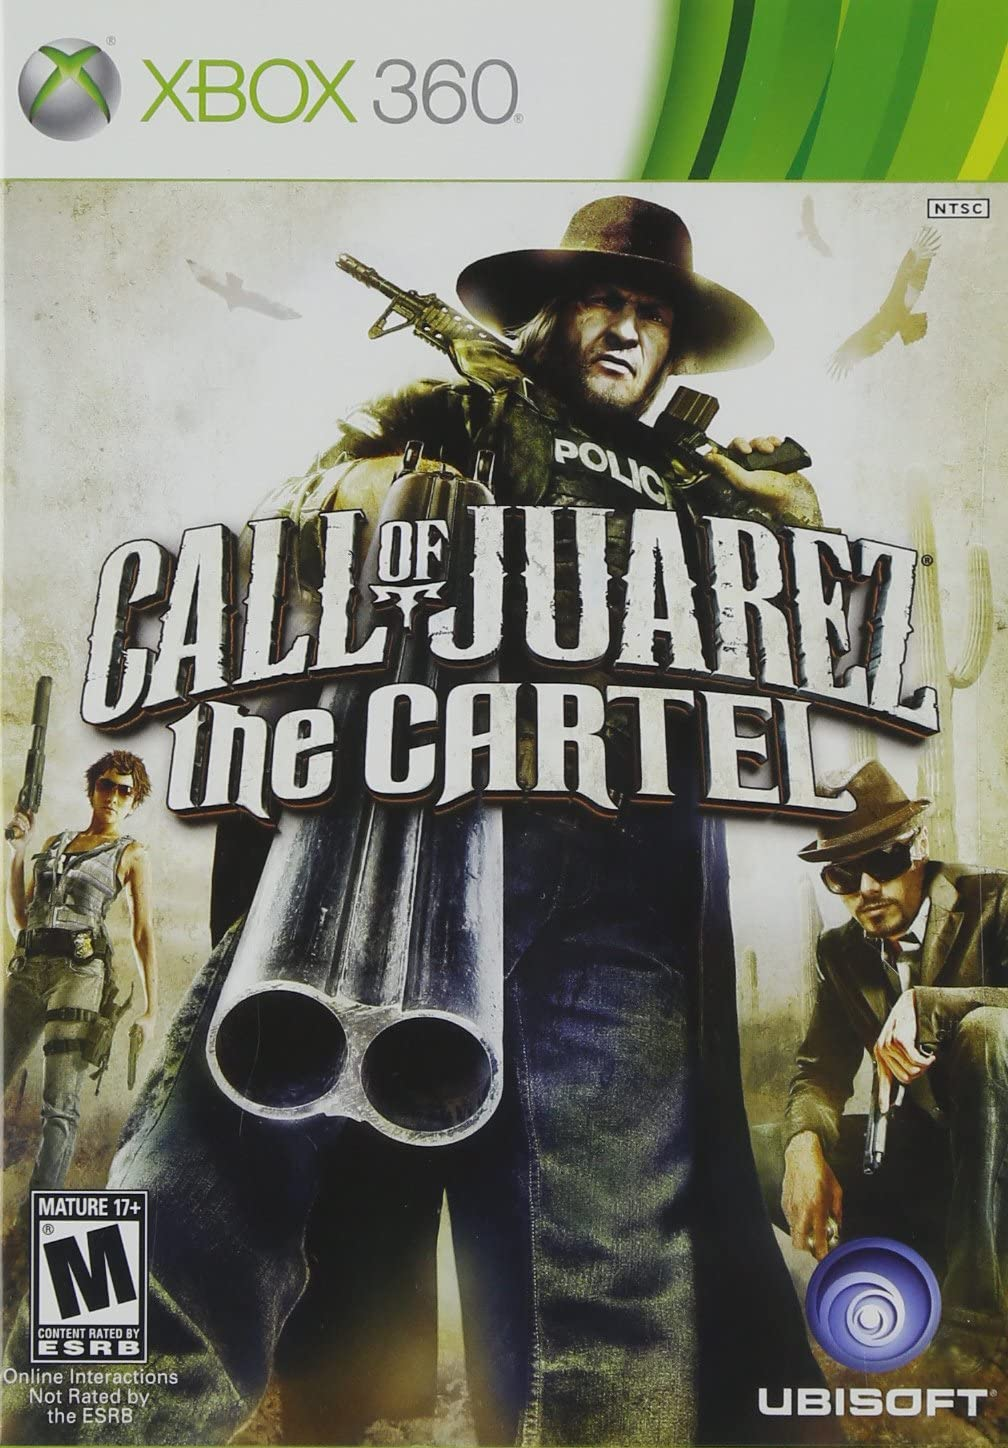 Amazon.com: Call of Juarez: The Cartel - PC: Video Games